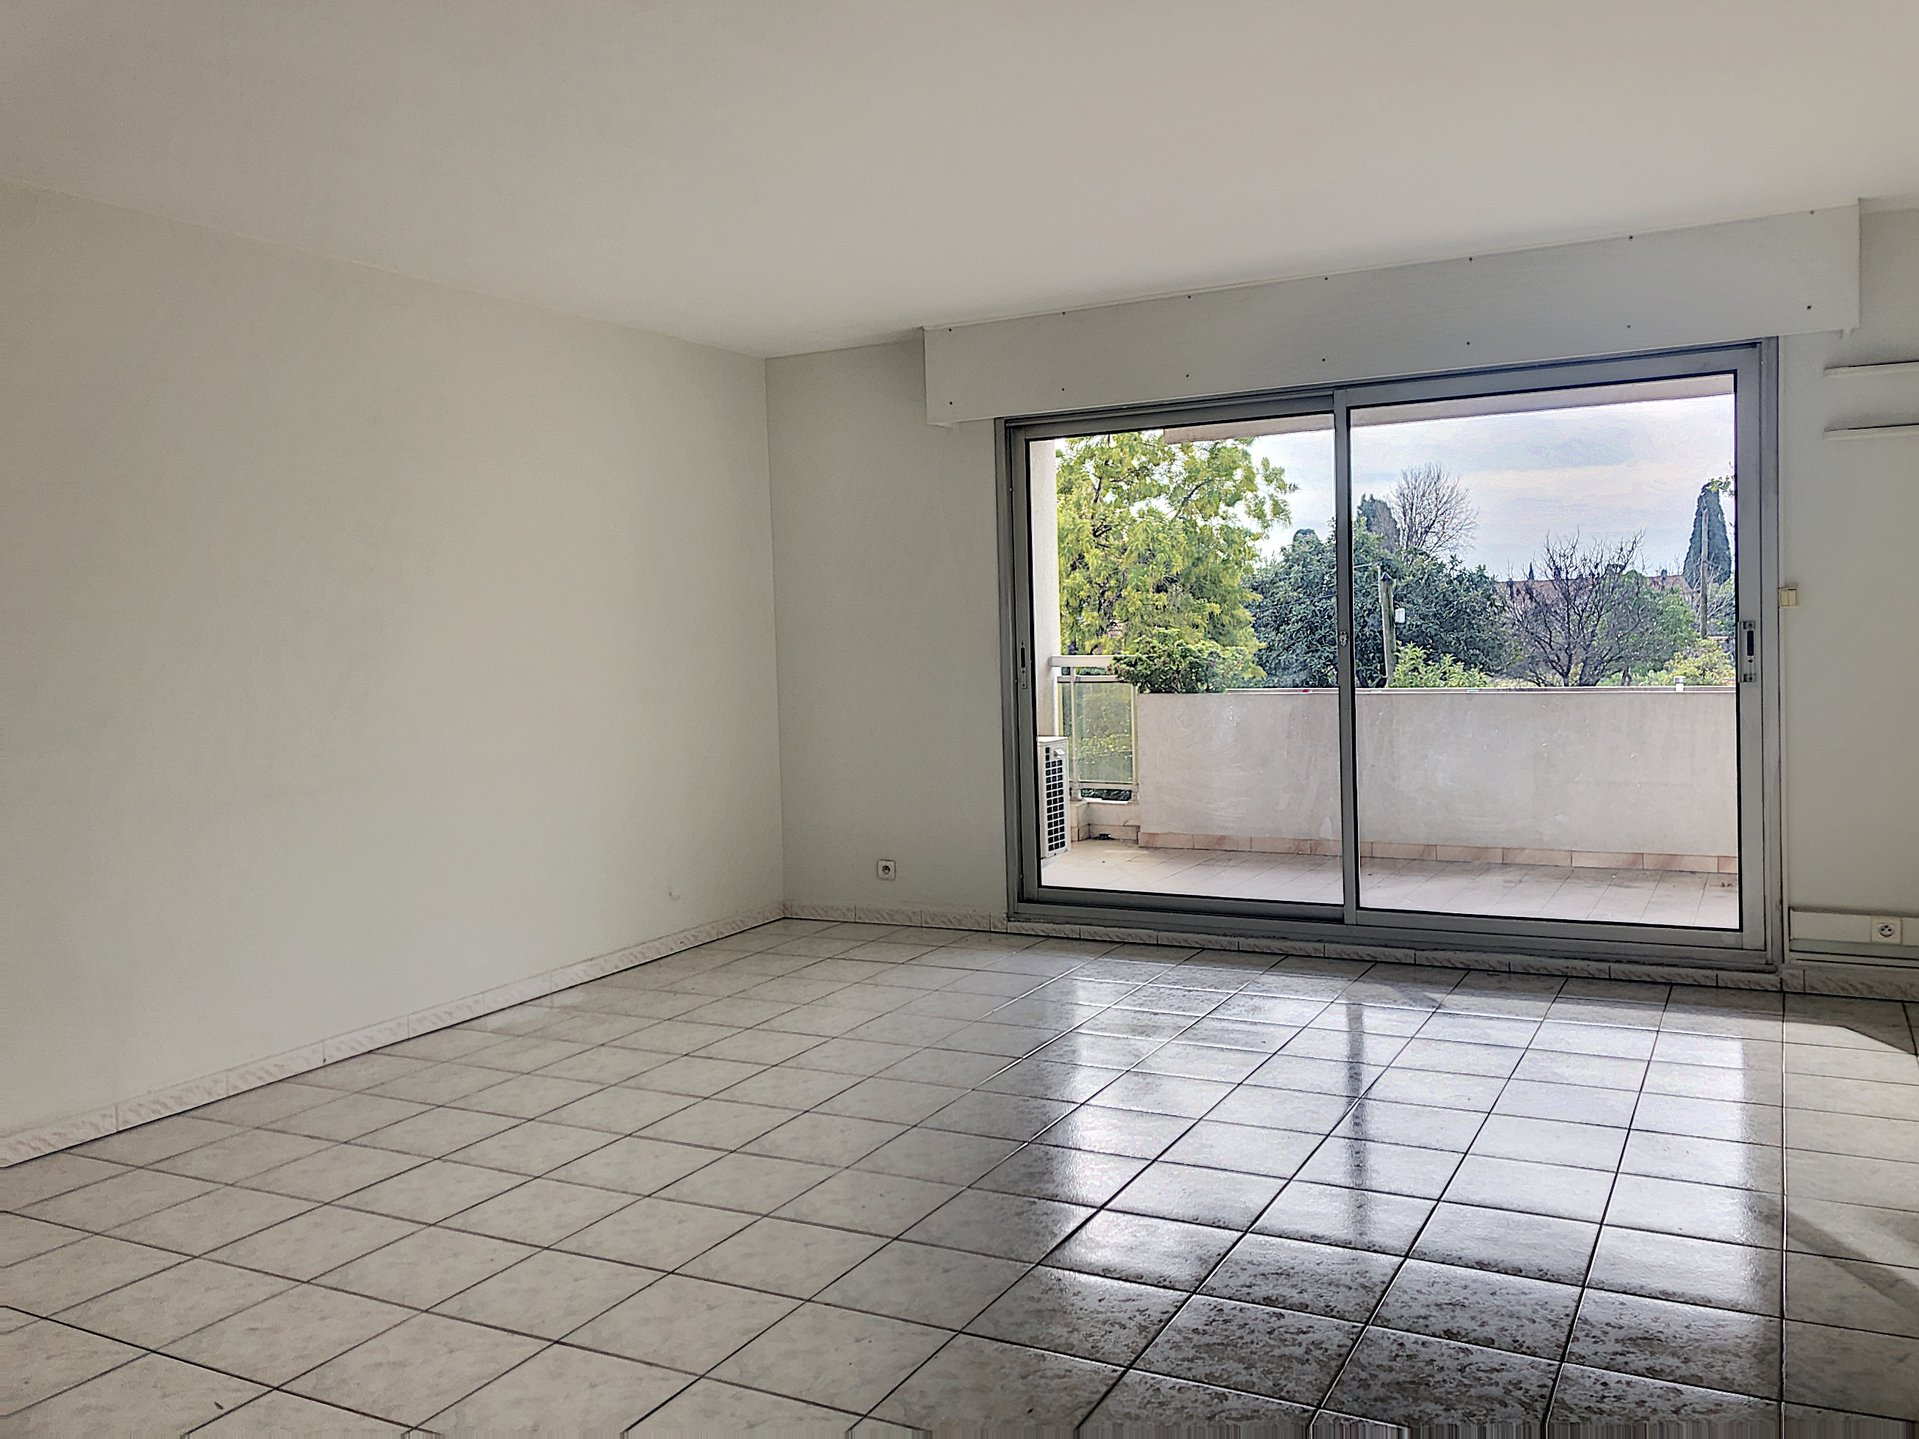 CAGNES SUR MER (06800) - Appartement 3p - 2 terrasses - parking - cave